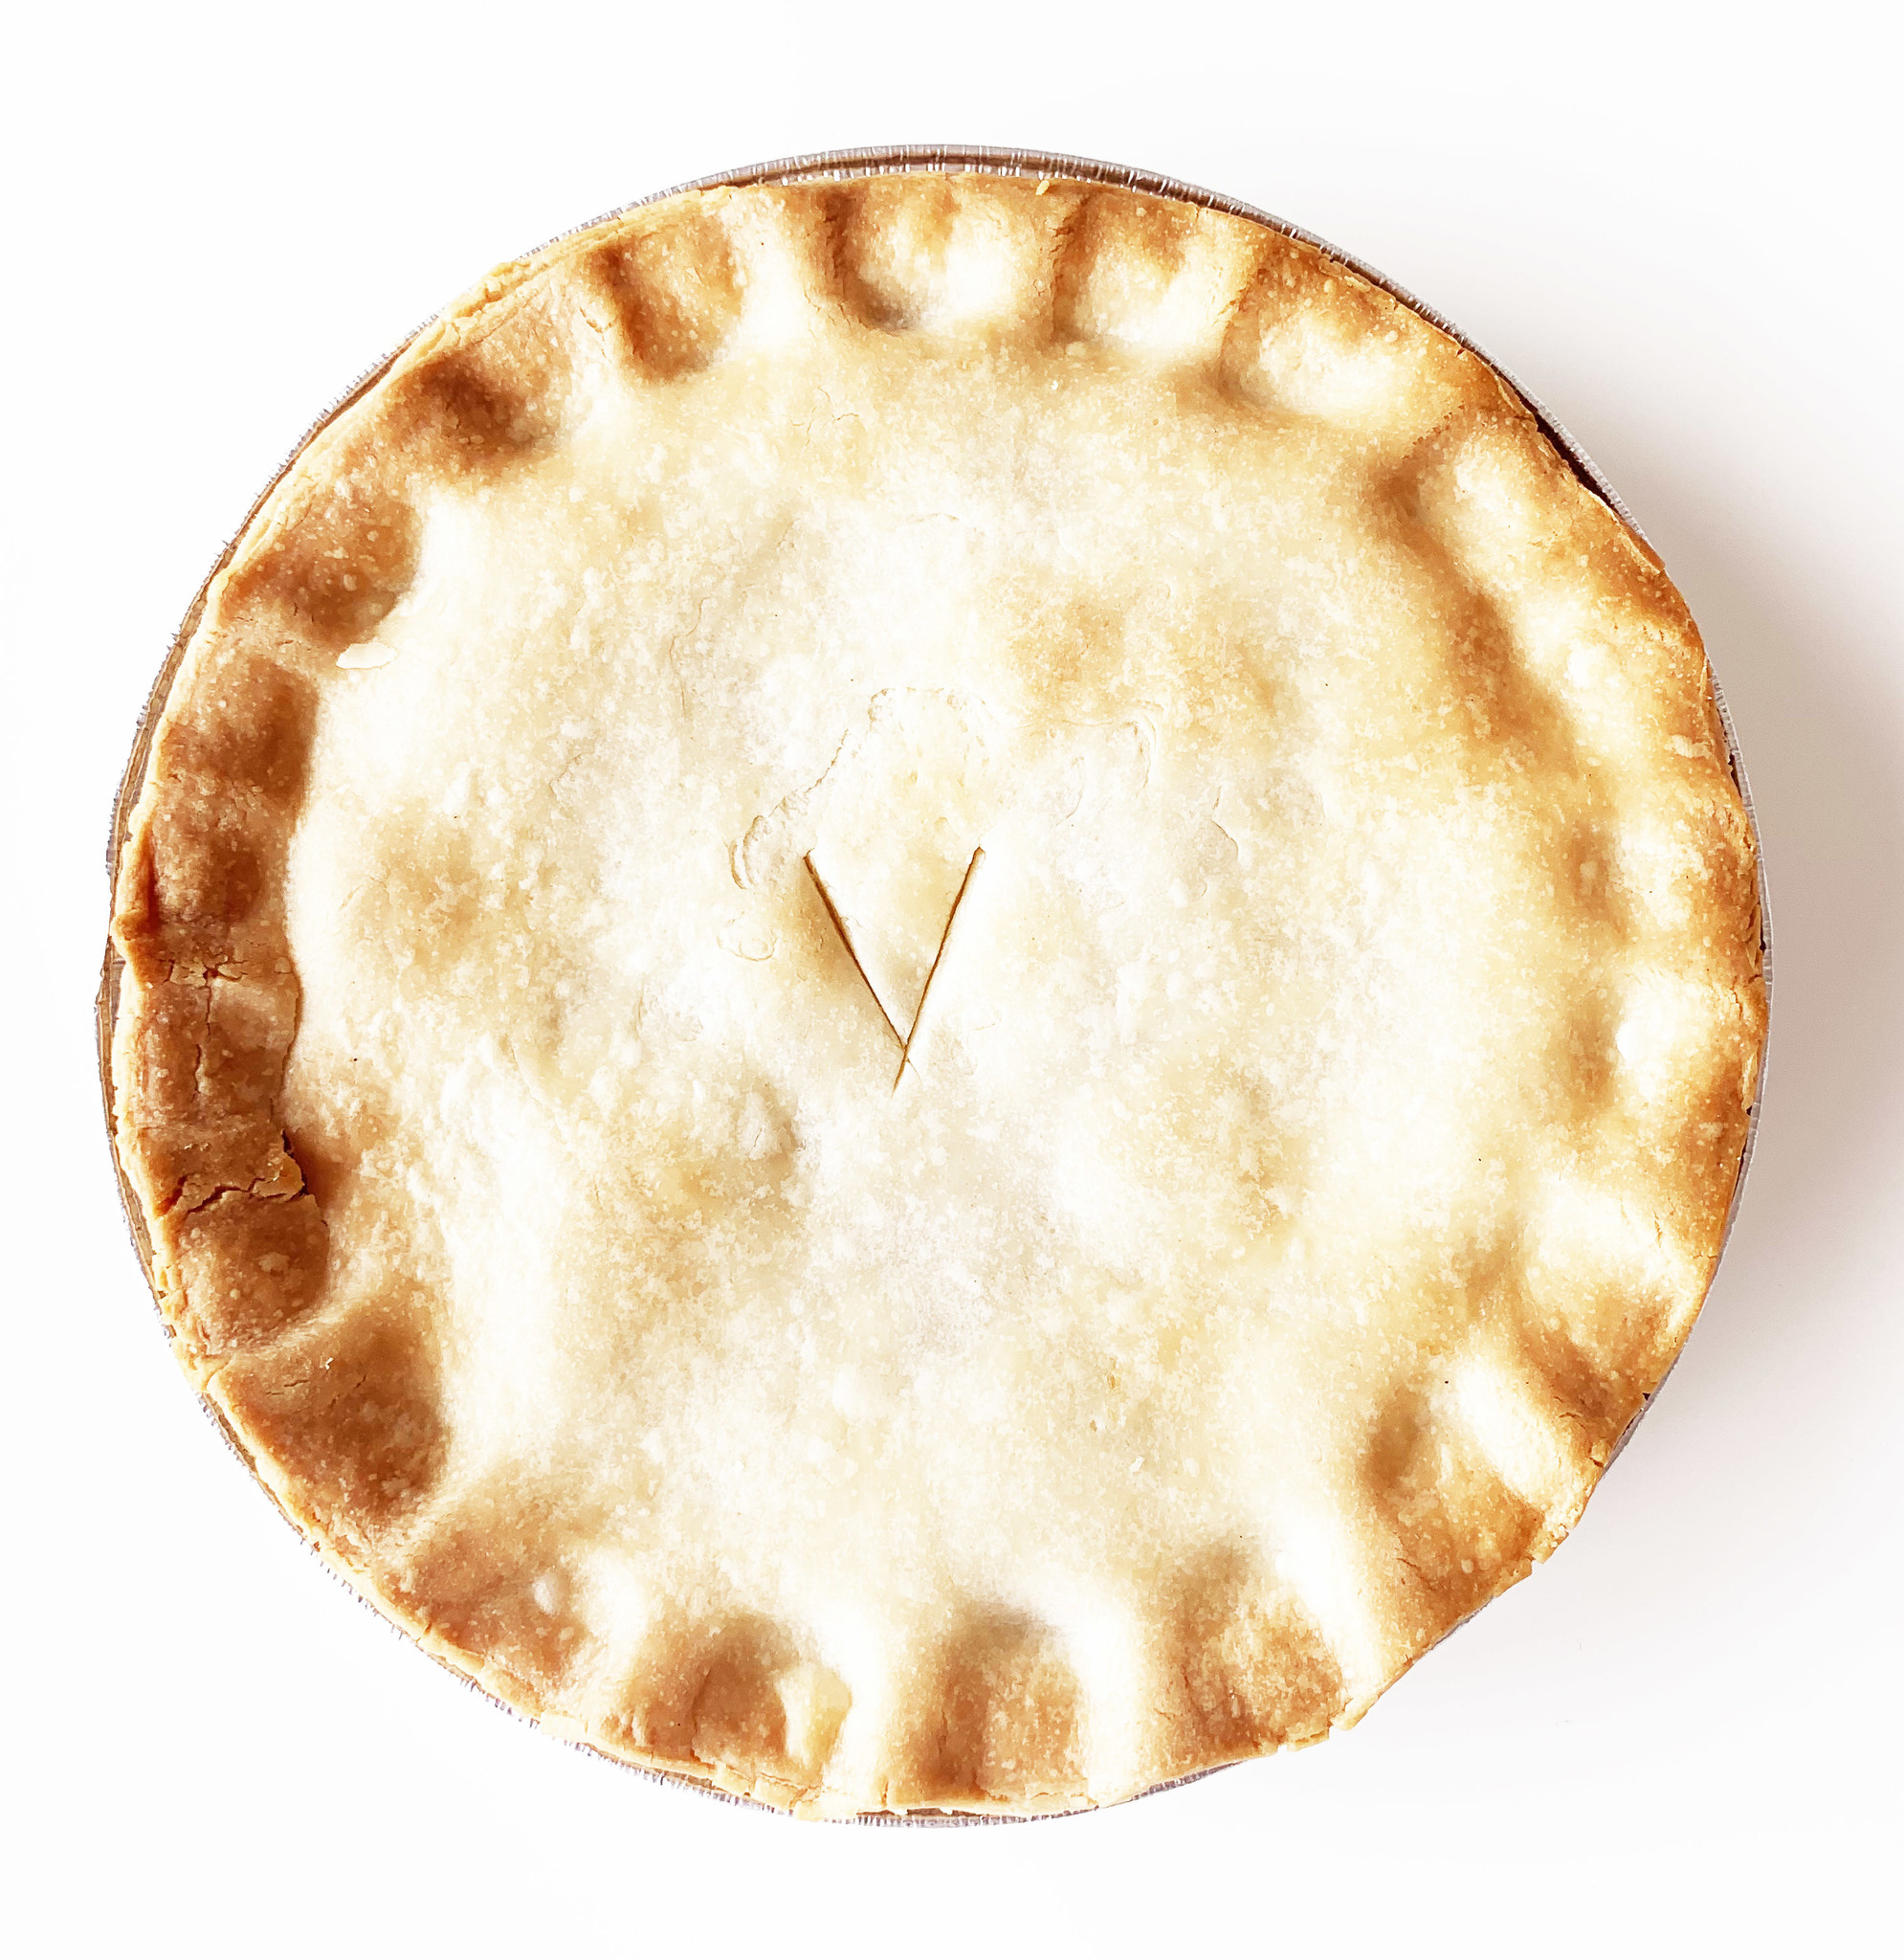 Large meat pie